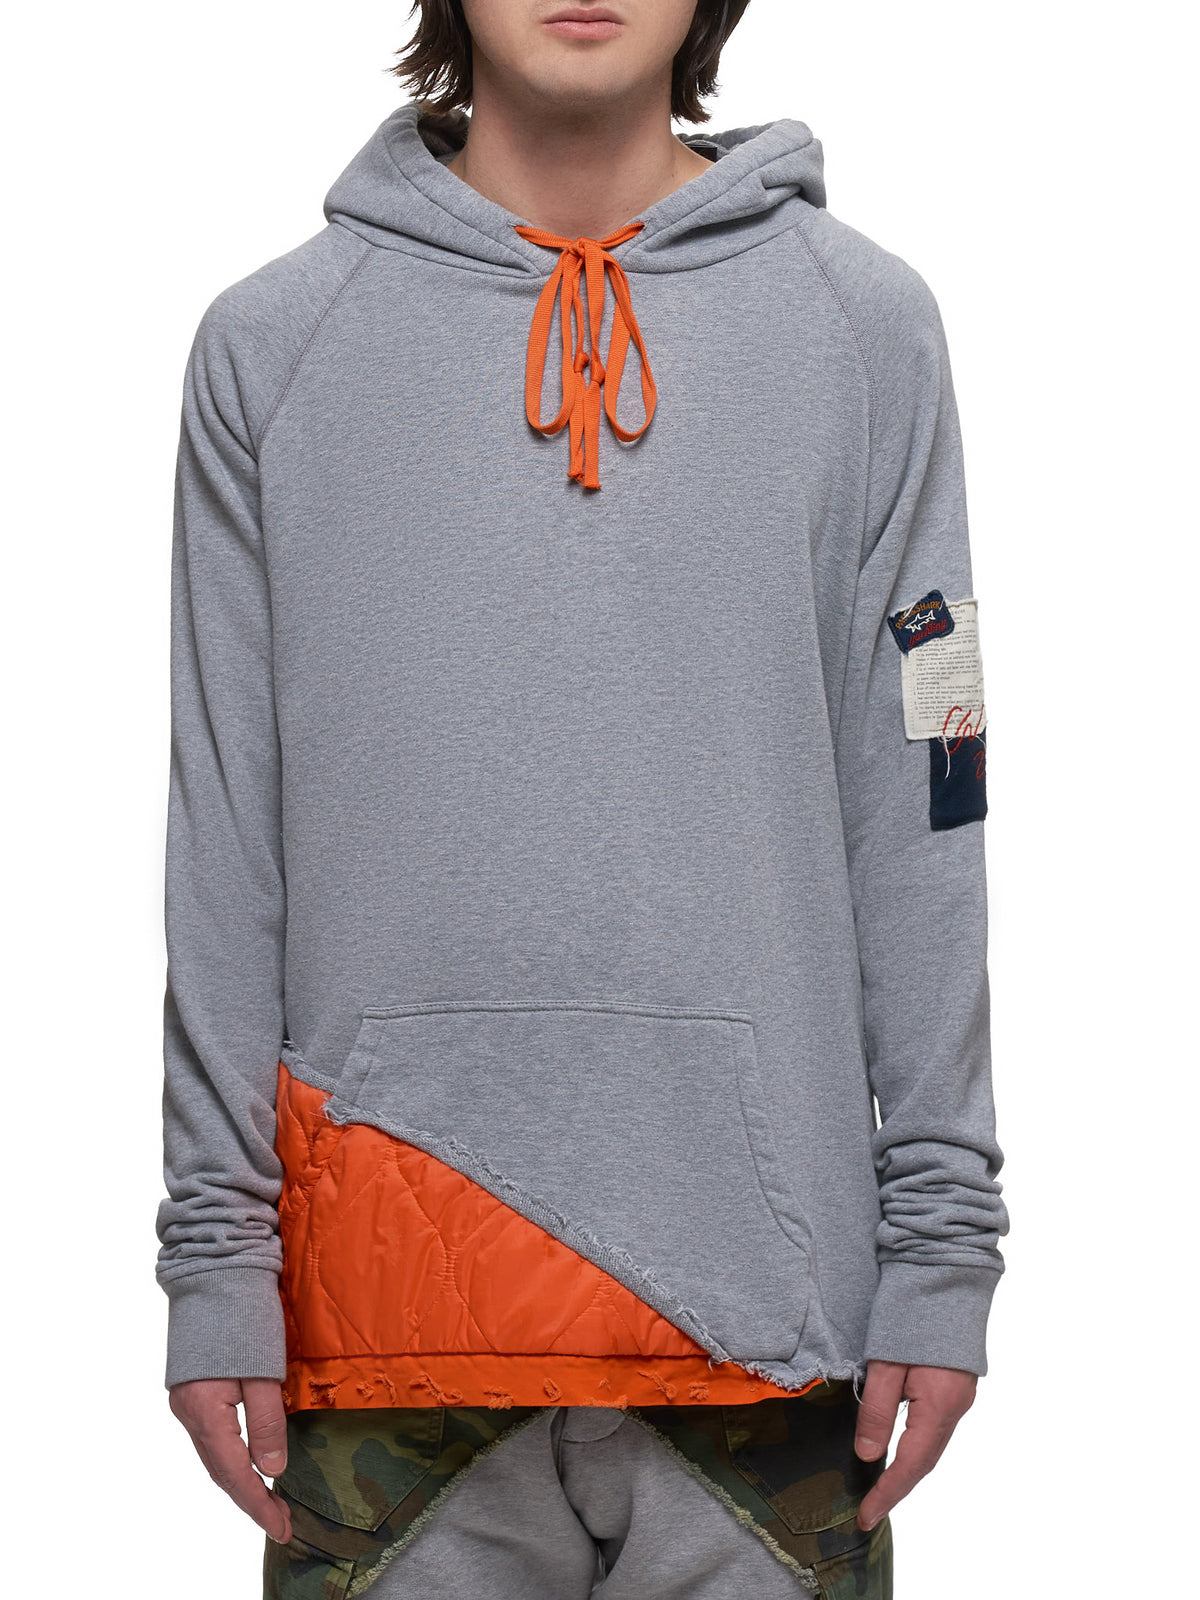 Patched Sweatshirt (P20P1454-GREY-ORANGE)